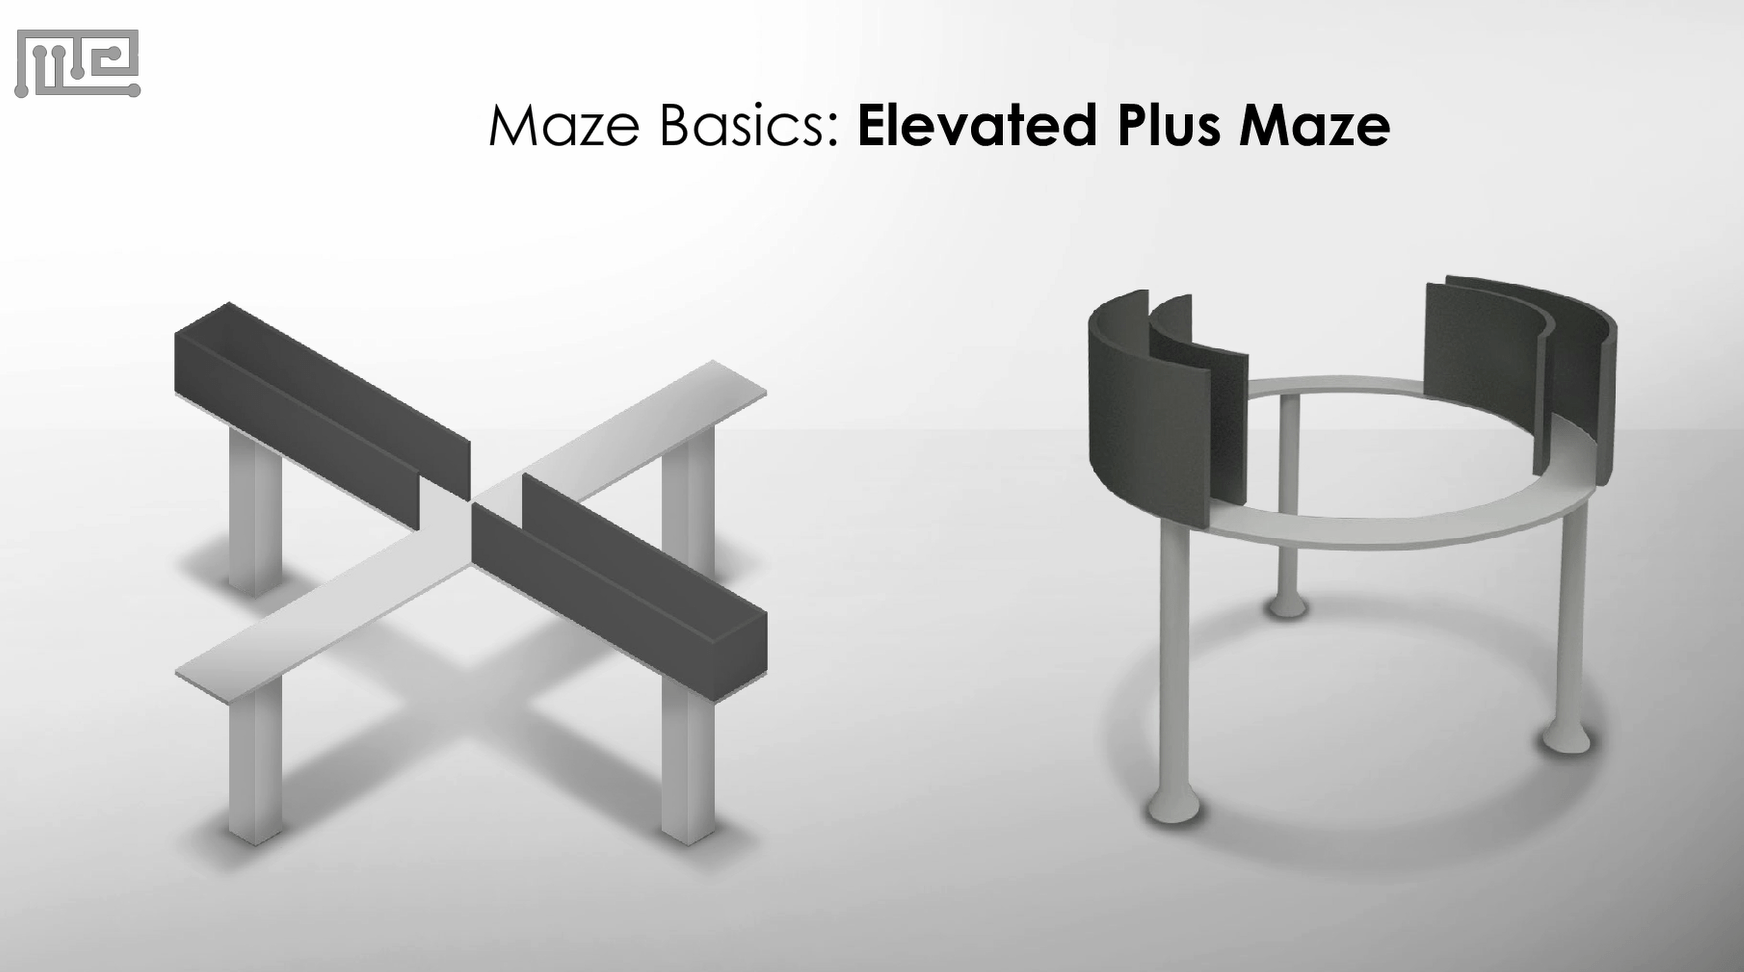 Elevated Plus Maze Apparatus and zero maze